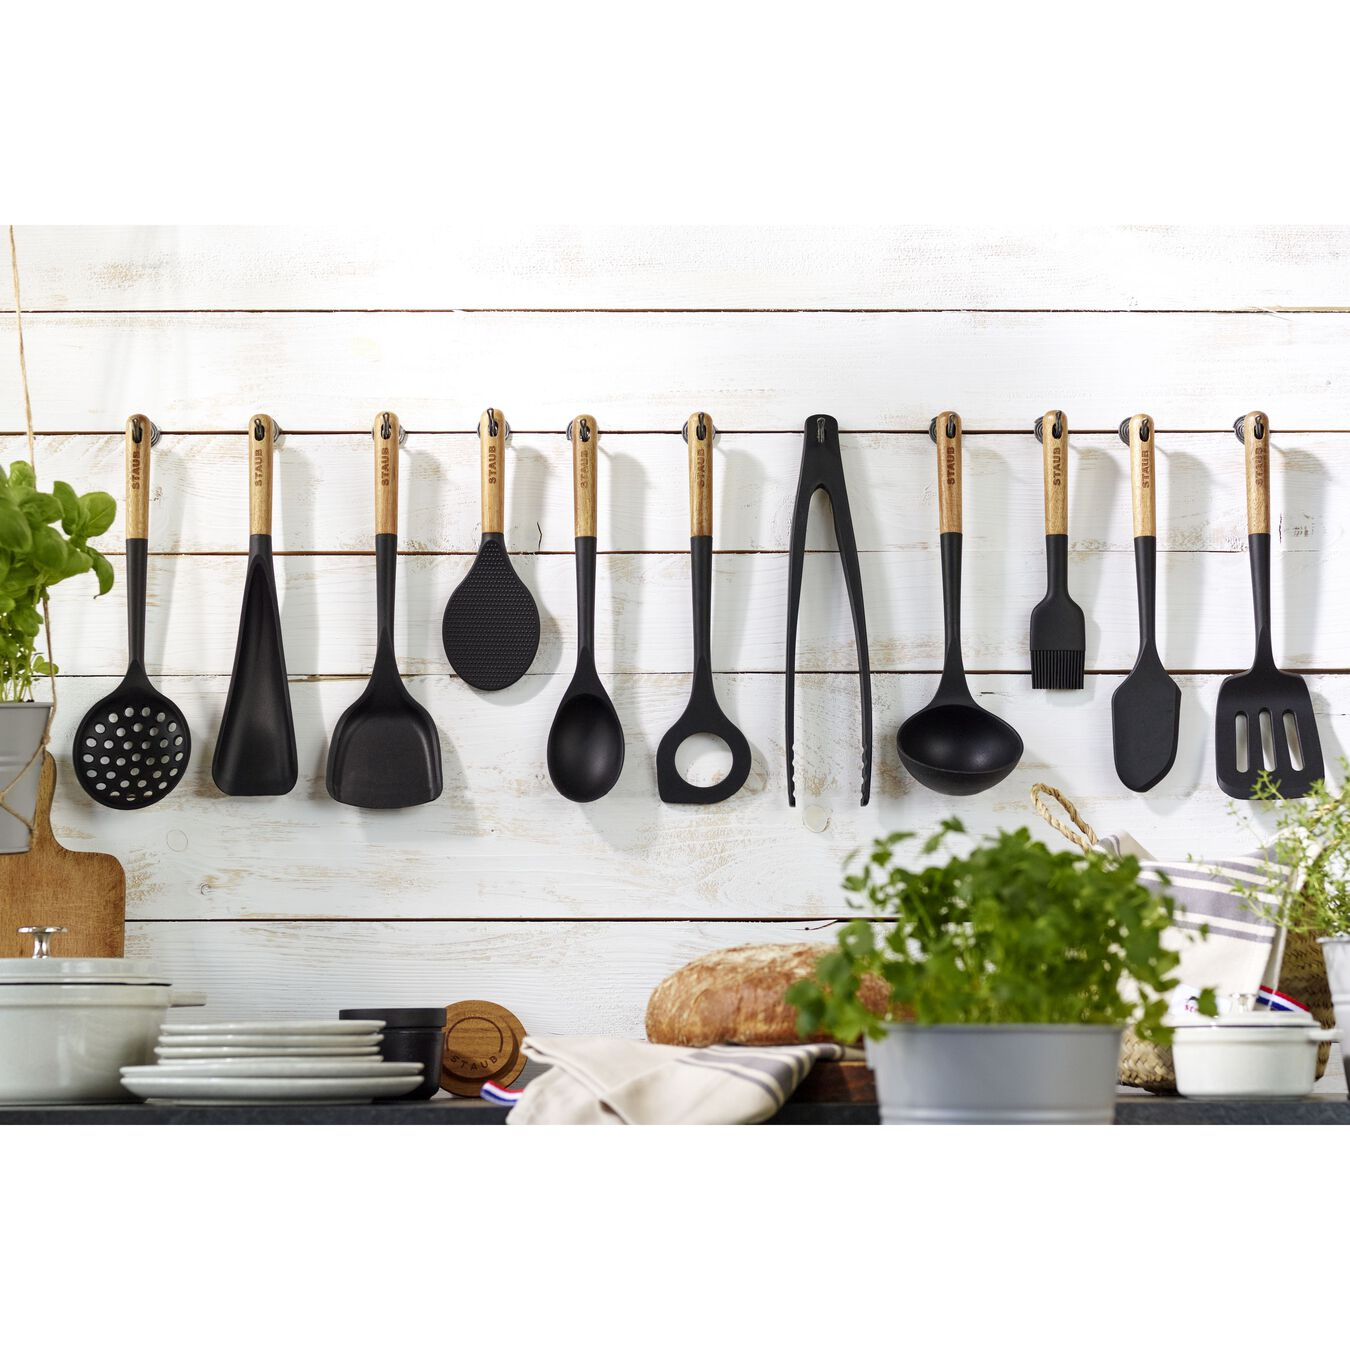 Serving spoon,,large 6